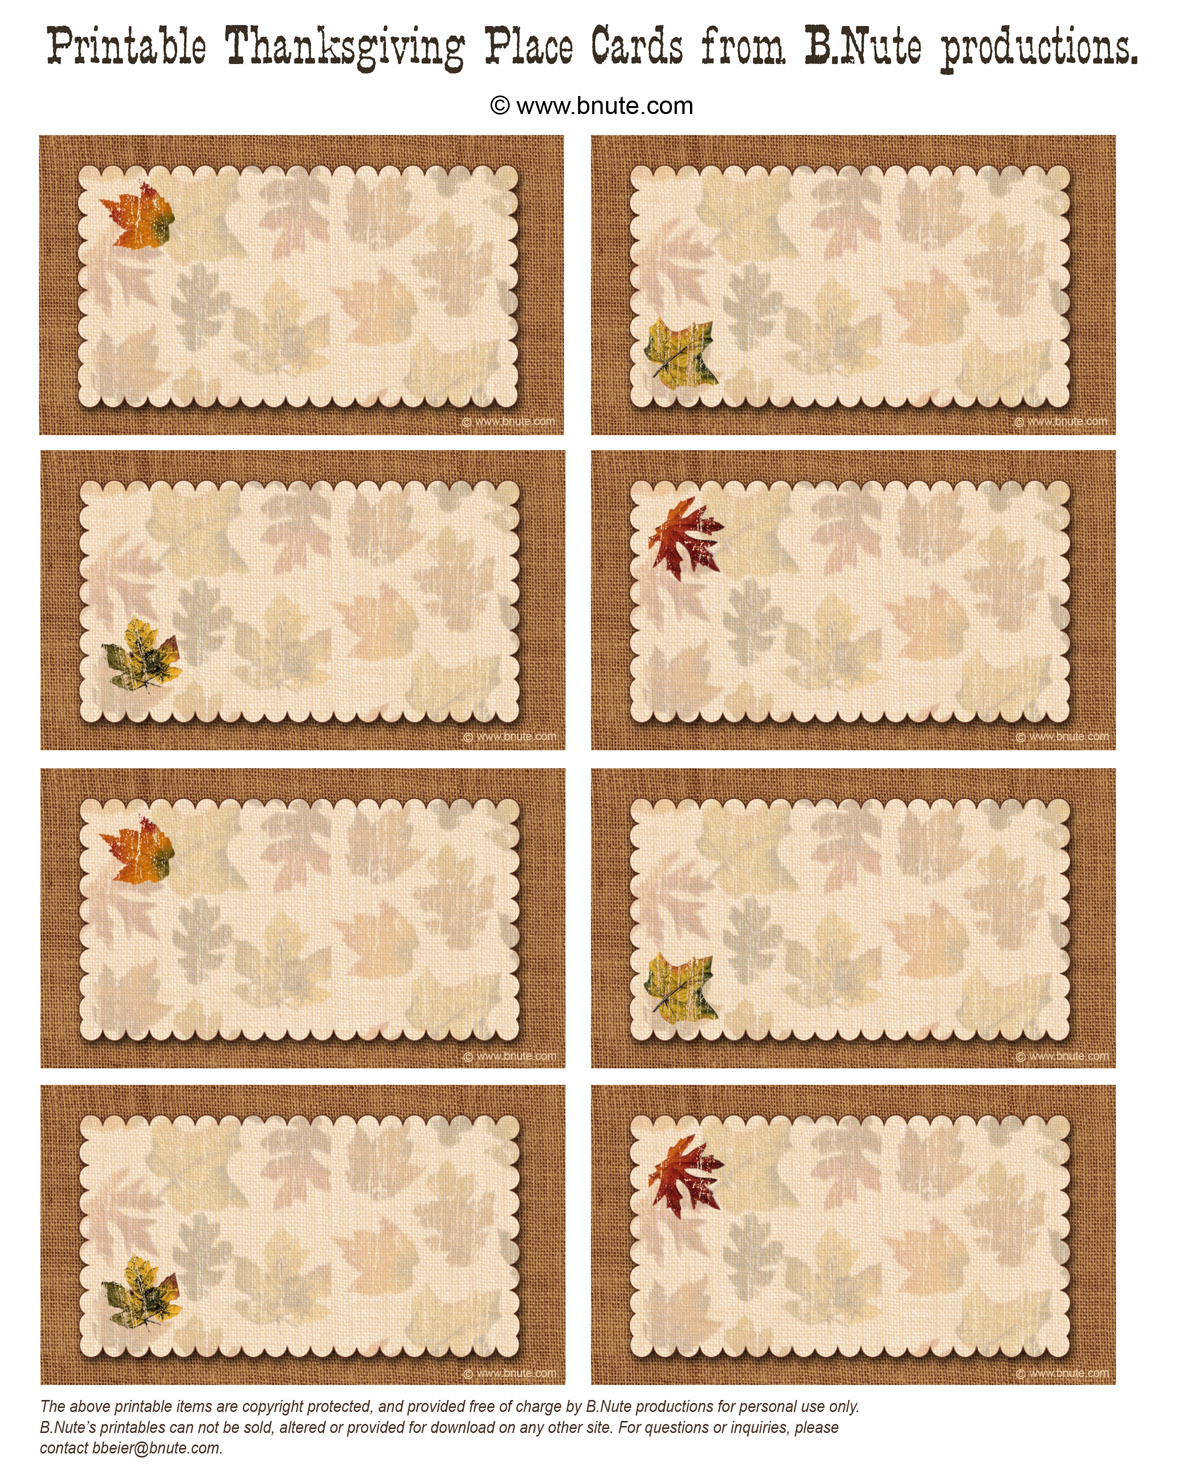 photograph about Thanksgiving Place Cards Printable called bnute productions: Totally free Printable Autumn Vacation spot Playing cards Great